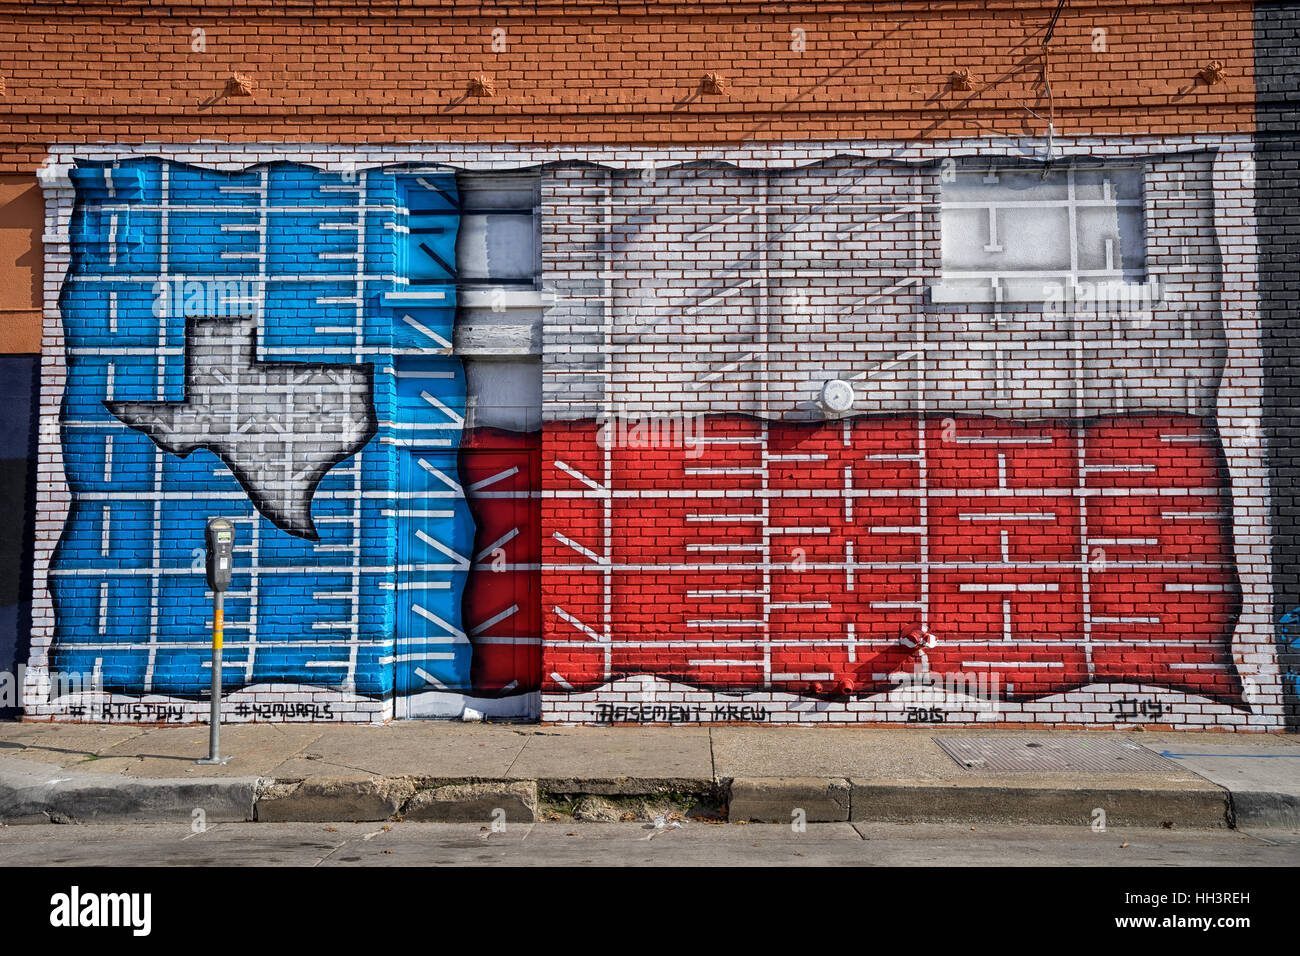 December 25, 2016 Dallas, Texas: the Deep Ellum area of the city is known for extensive graffiti arts painted on - Stock Image